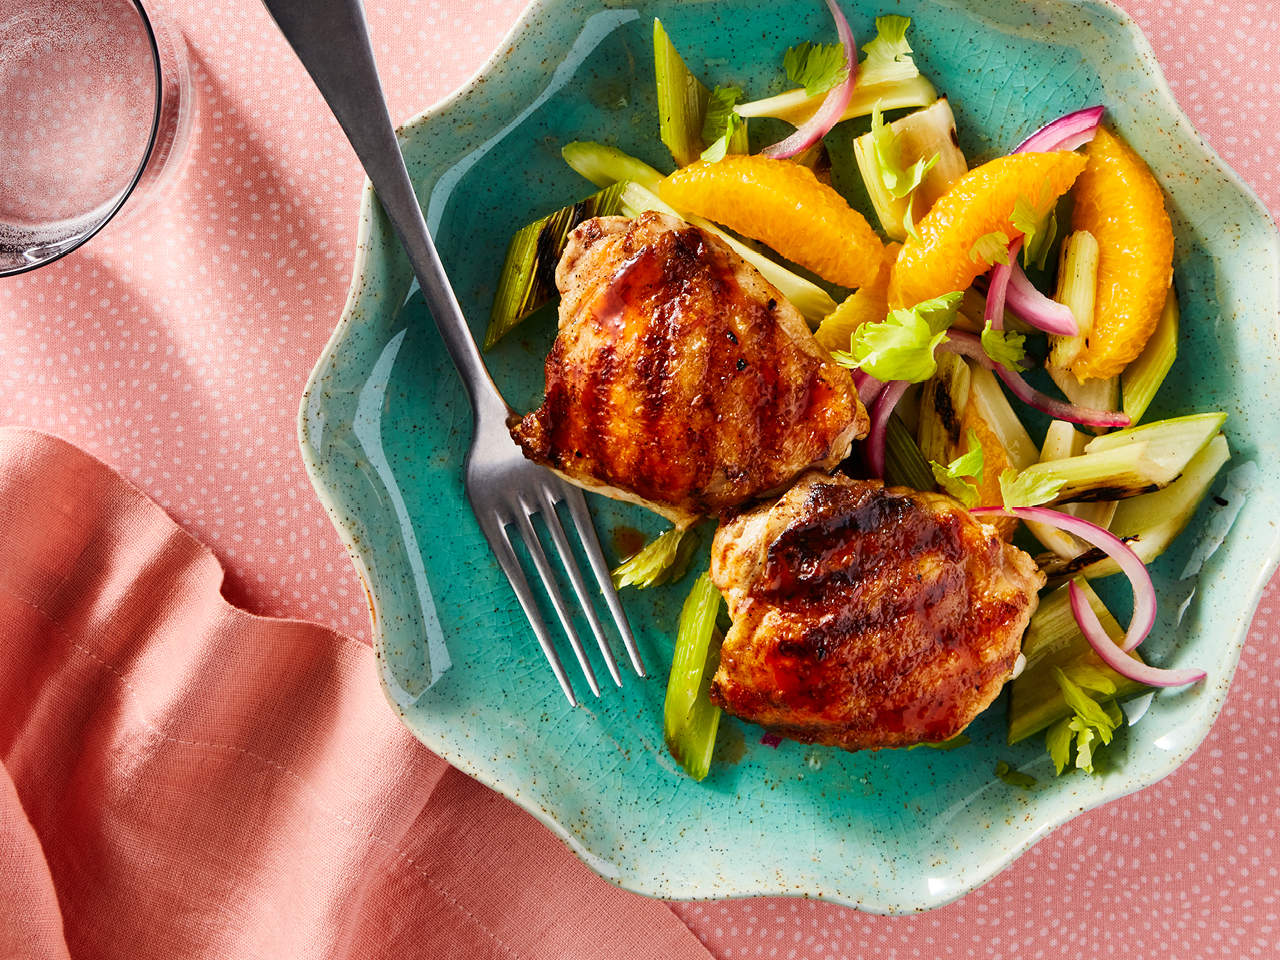 Crispy Chicken Thighs With Grilled Celery And Orange Salad